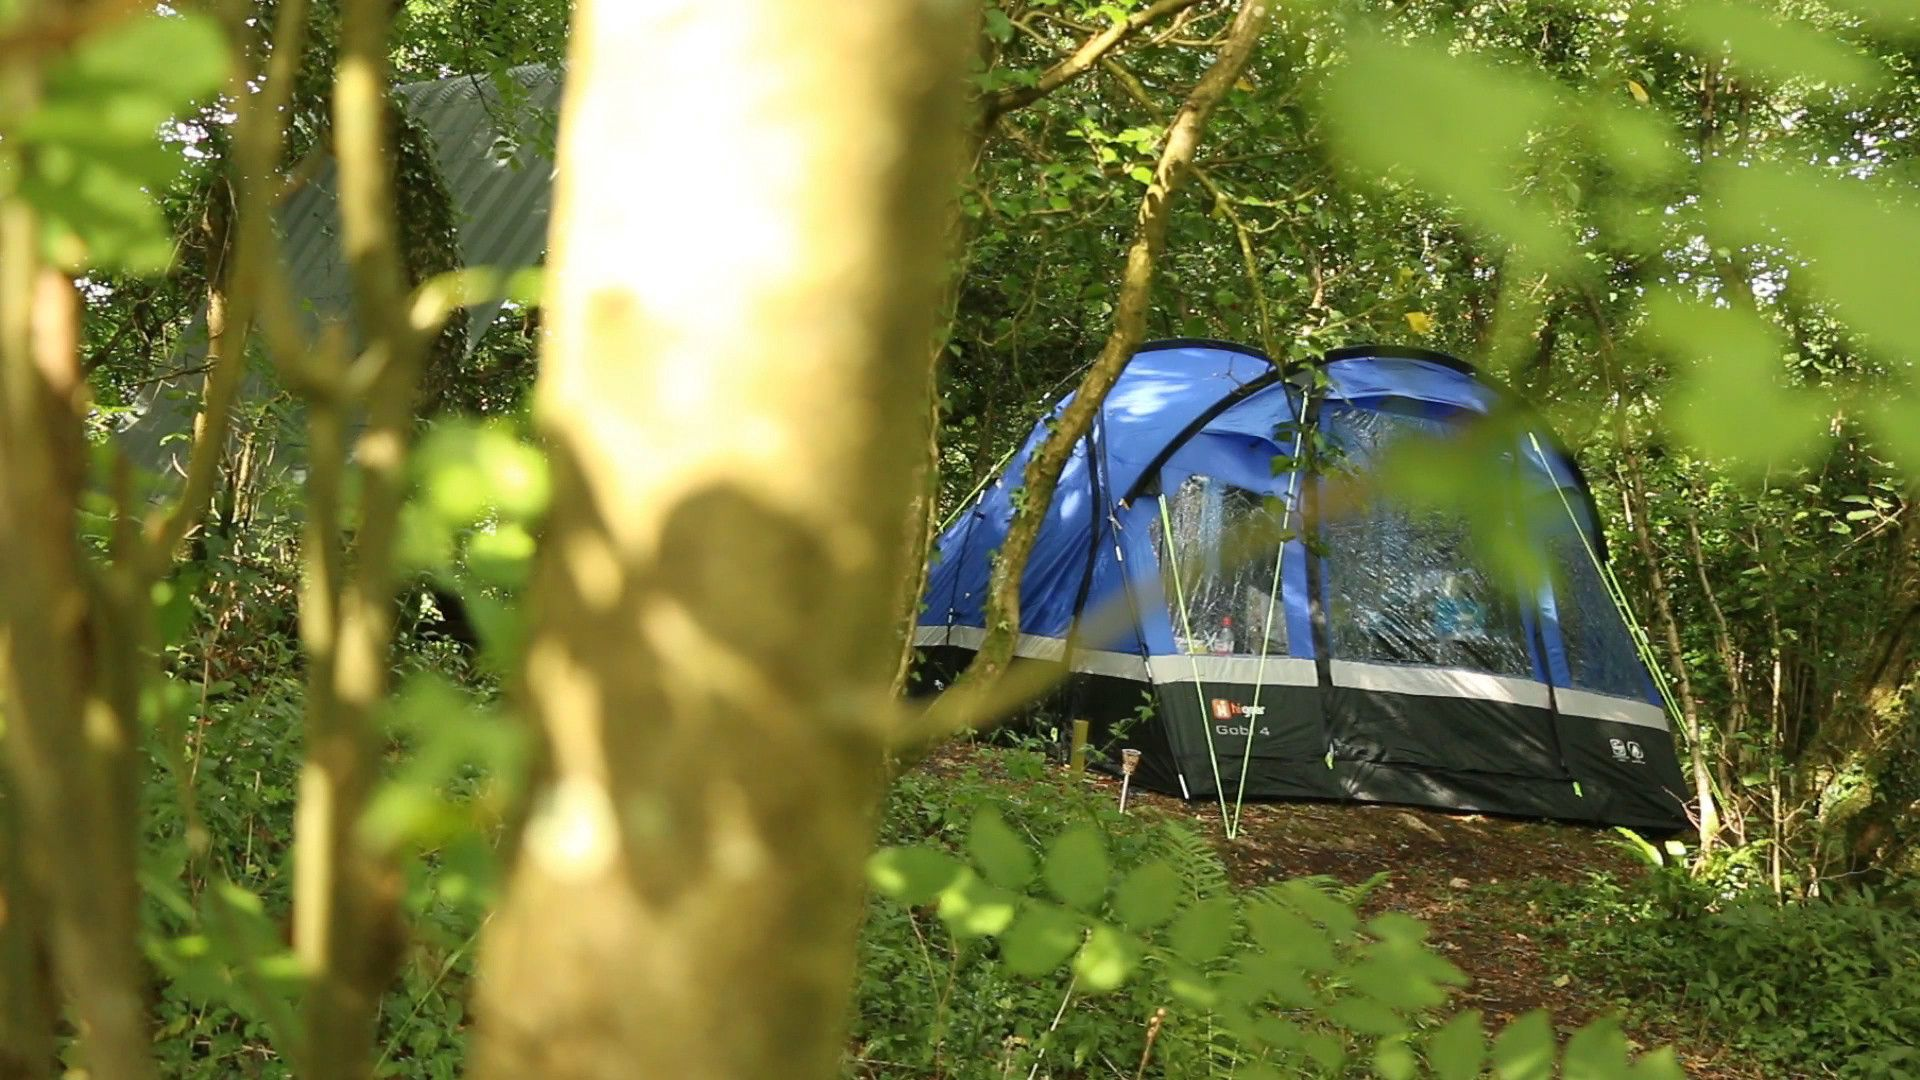 Campsites in South Wales